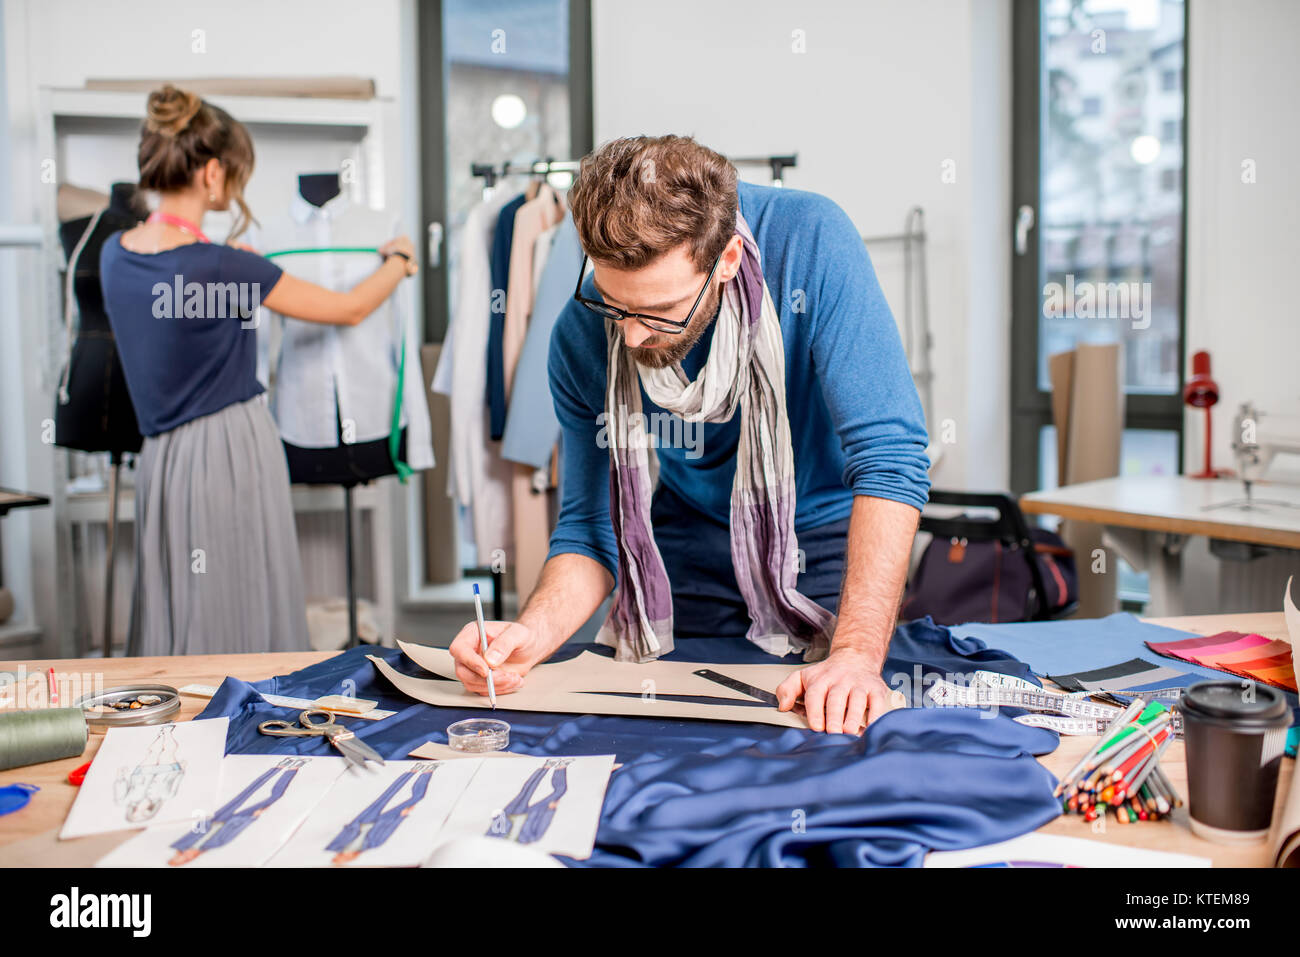 Couple Of Fashion Designers Working With Fabric And Clothing Sketches Stock Photo Alamy